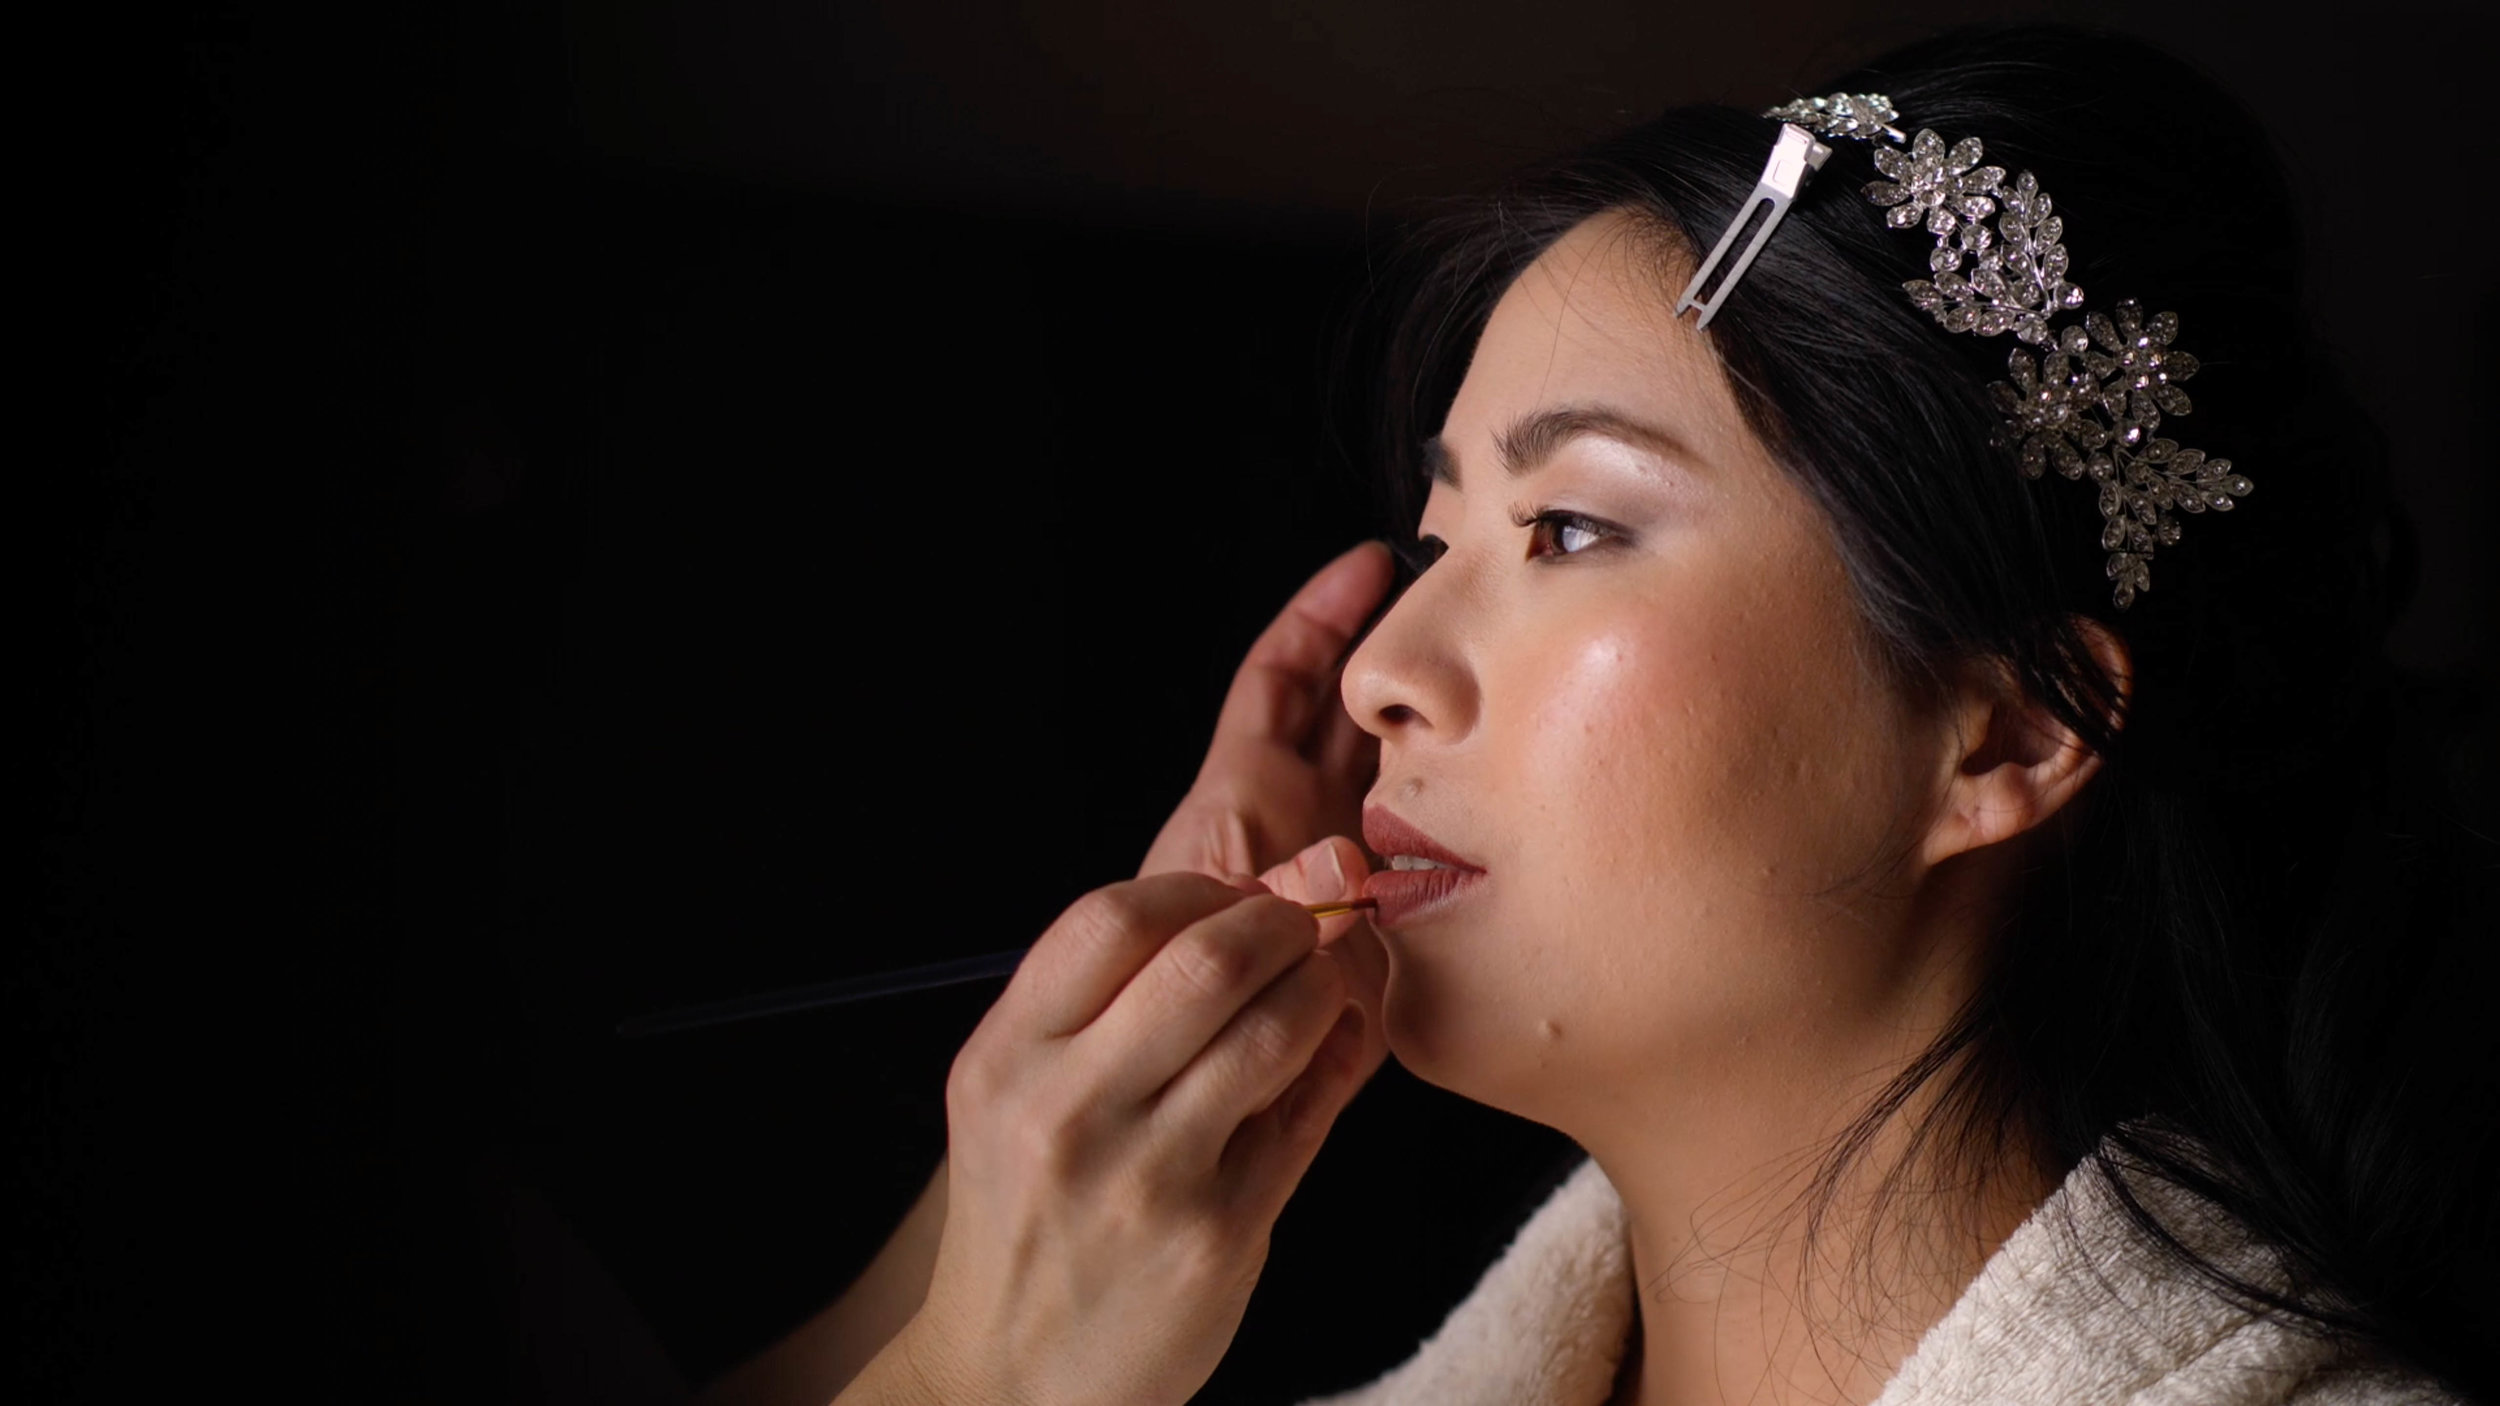 Bride getting ready for her wedding day by placing lipstick on her lips underneath beautiful window light.